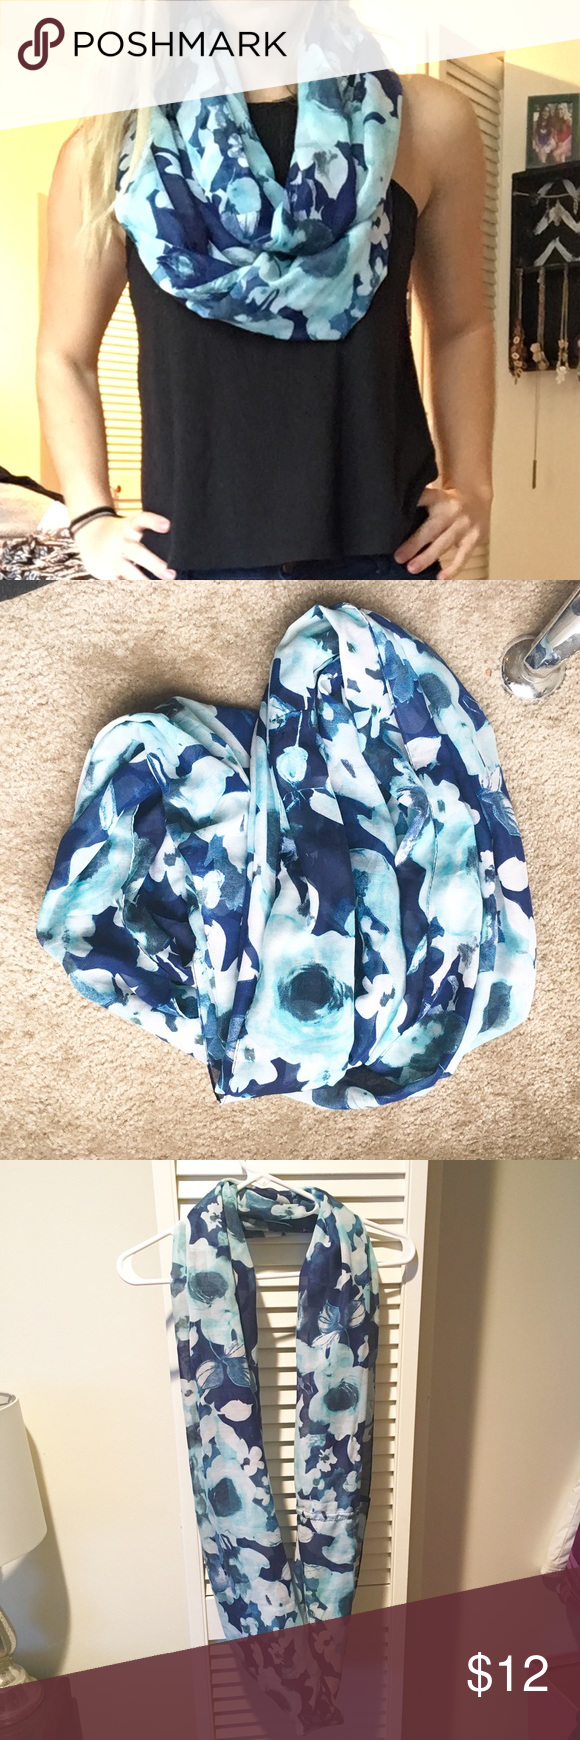 Floral scarf Infinity scarf. Lightweight and like new Lucky Brand Accessories Scarves & Wraps